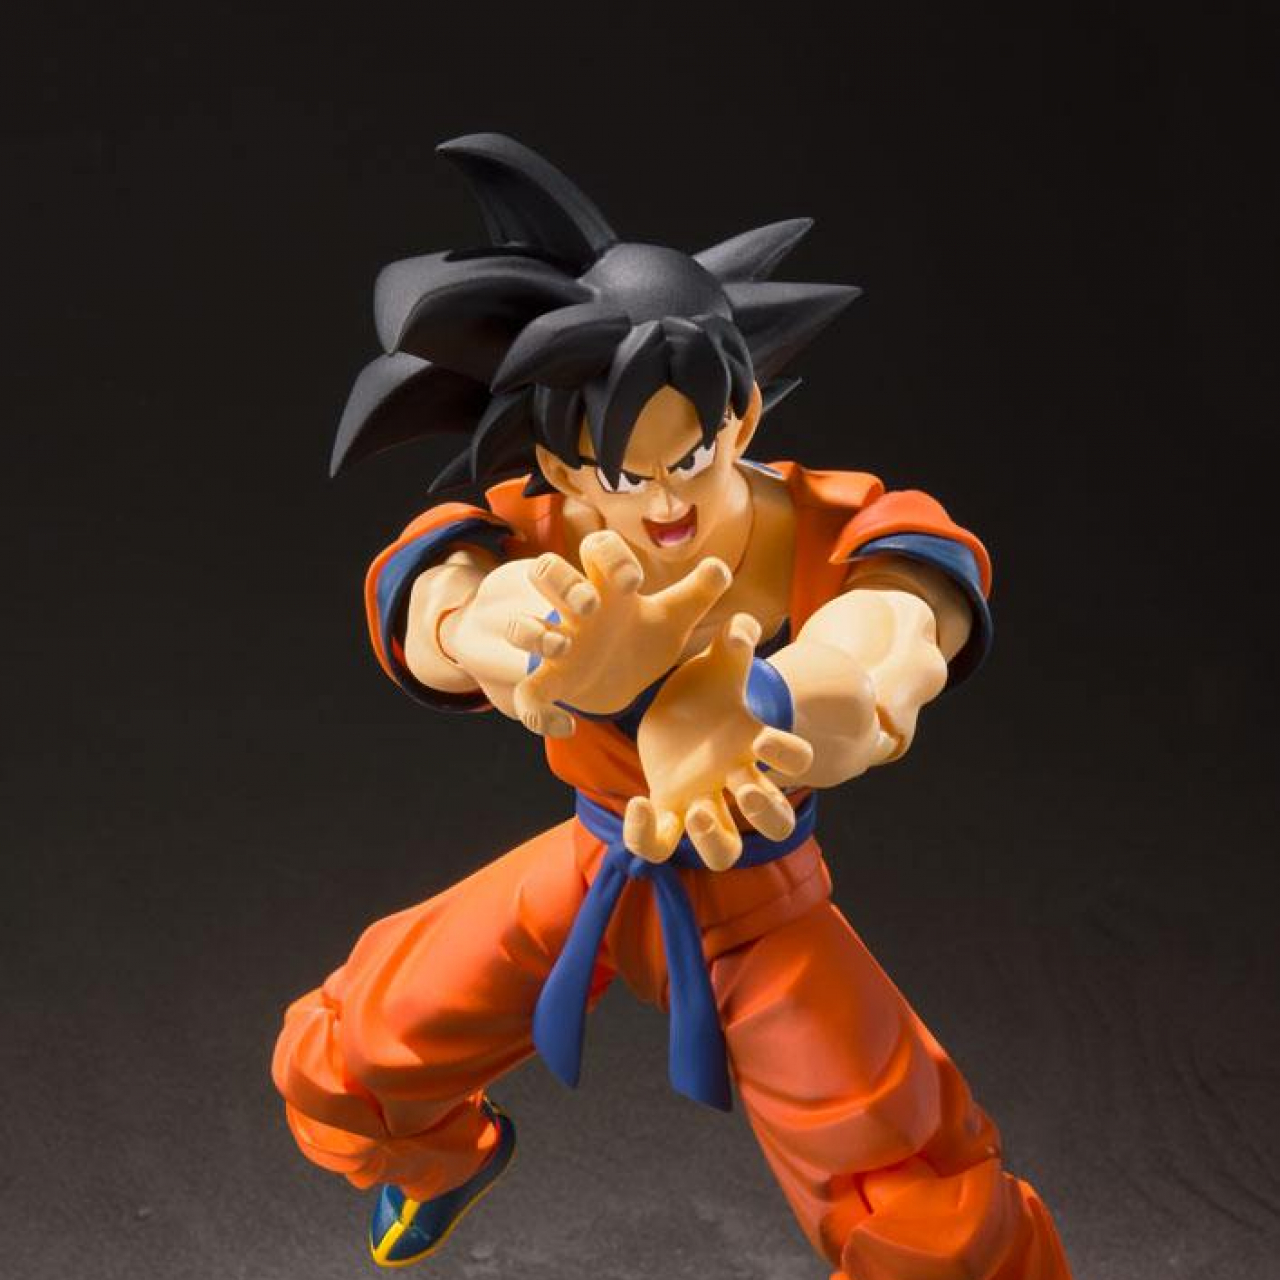 Dragonball Z S.H. Figuarts Action Figure Son Goku (A Saiyan Raised On Earth) 14 cm